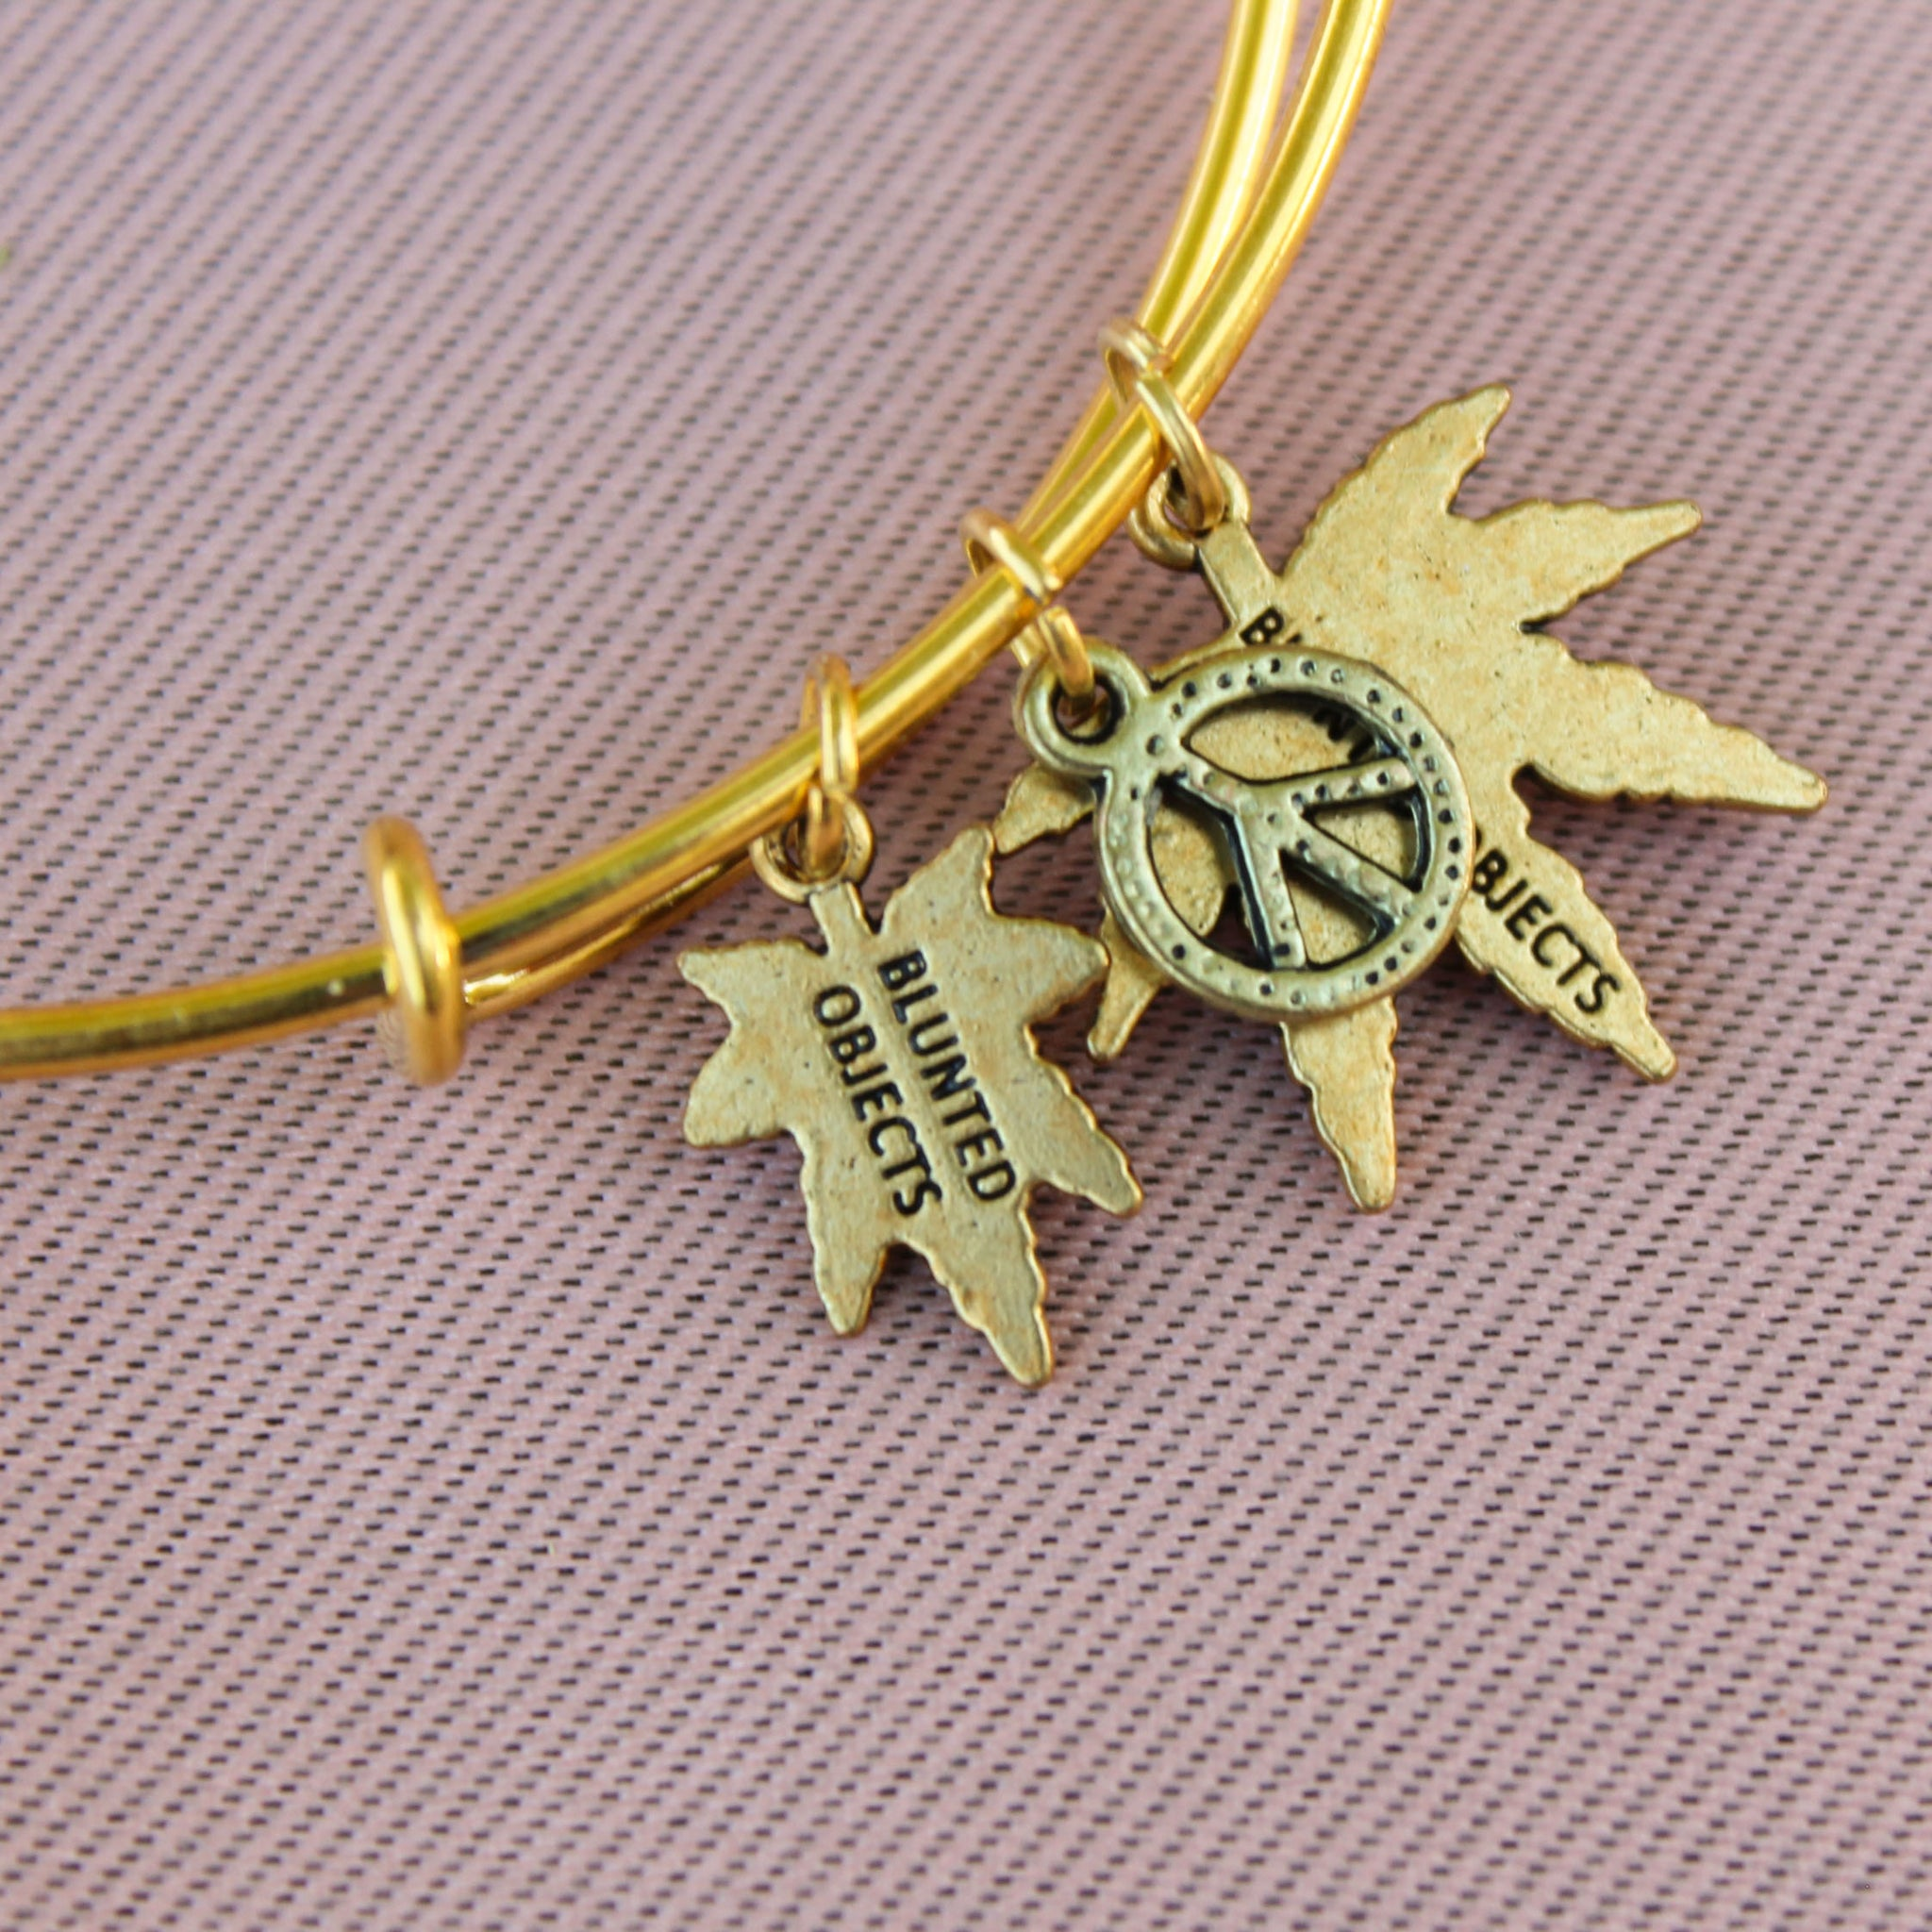 Peace and Weed Charm Wire Bangle Bracelet - Blunted Objects